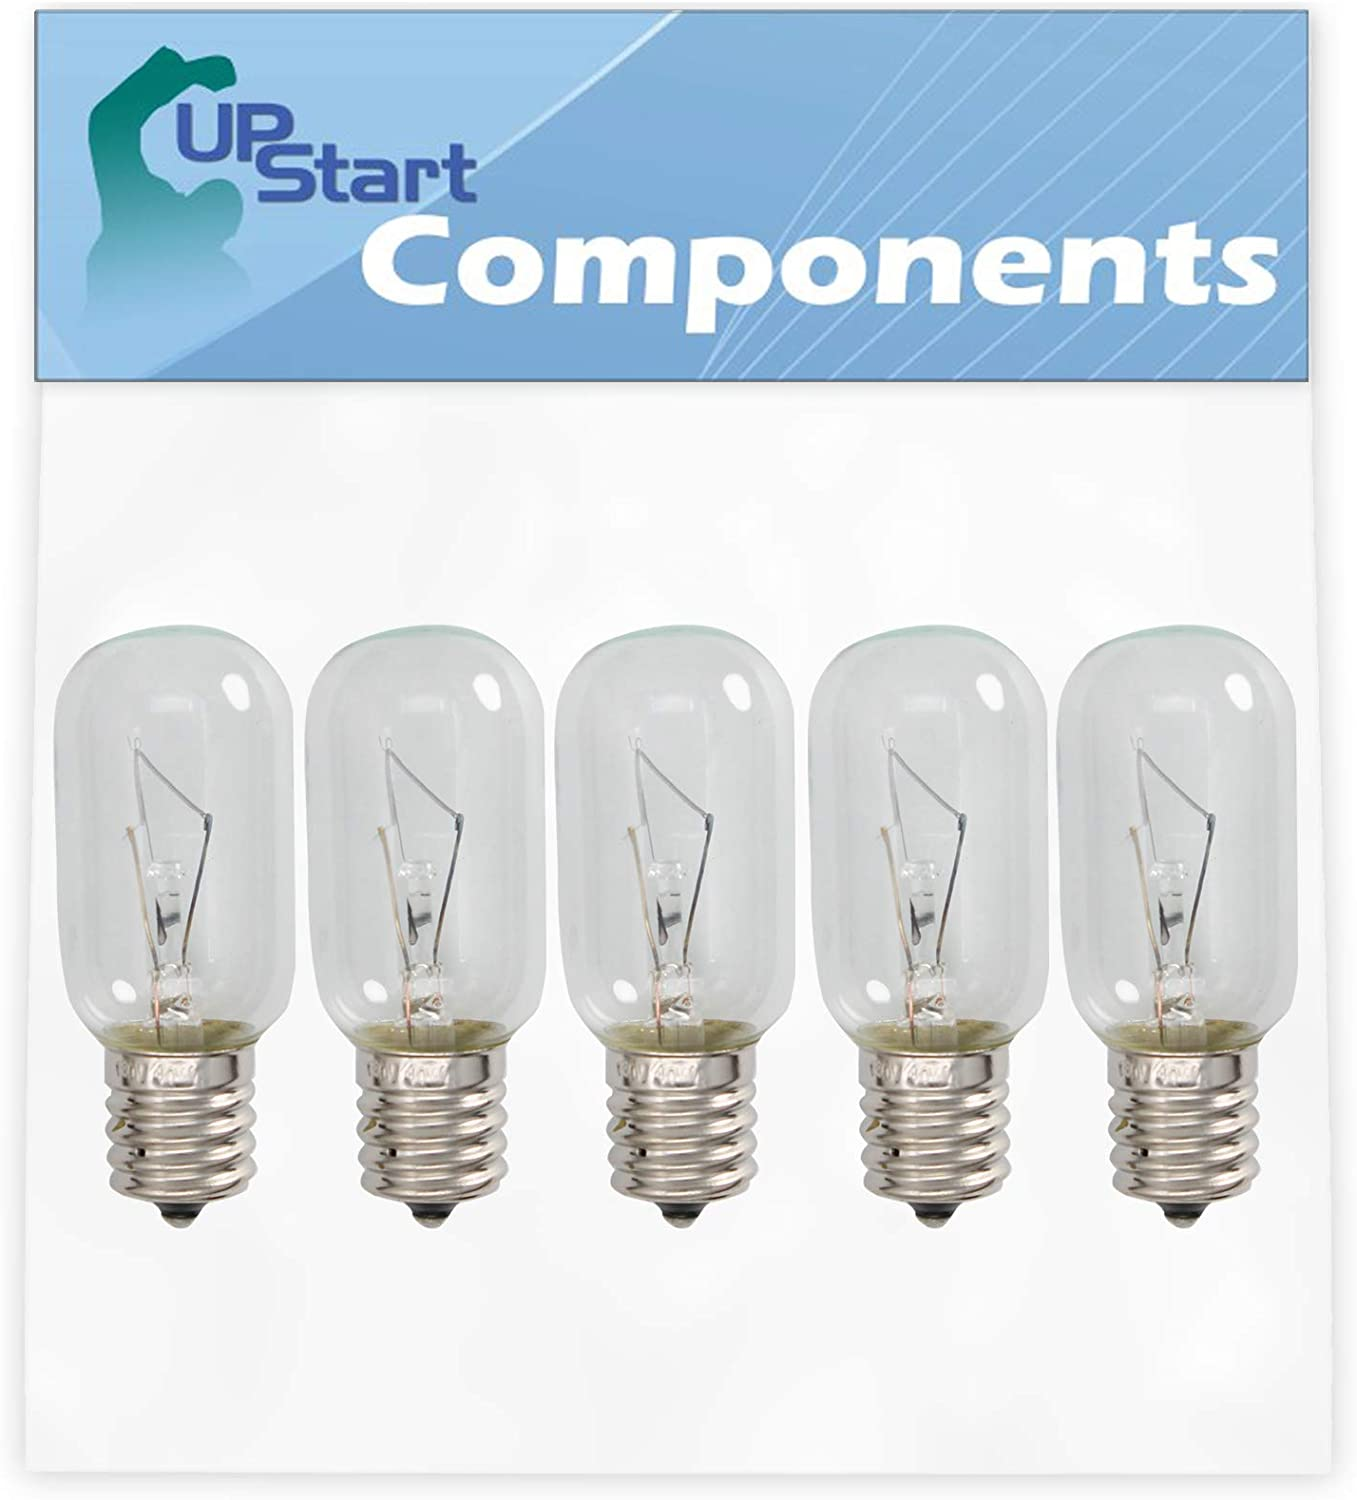 5-Pack 4713-001013 Microwave Light Bulb Replacement for Samsung SMH9151W/XAA-0000 Microwave - Compatible with Samsung 4713-001013 Light Bulb